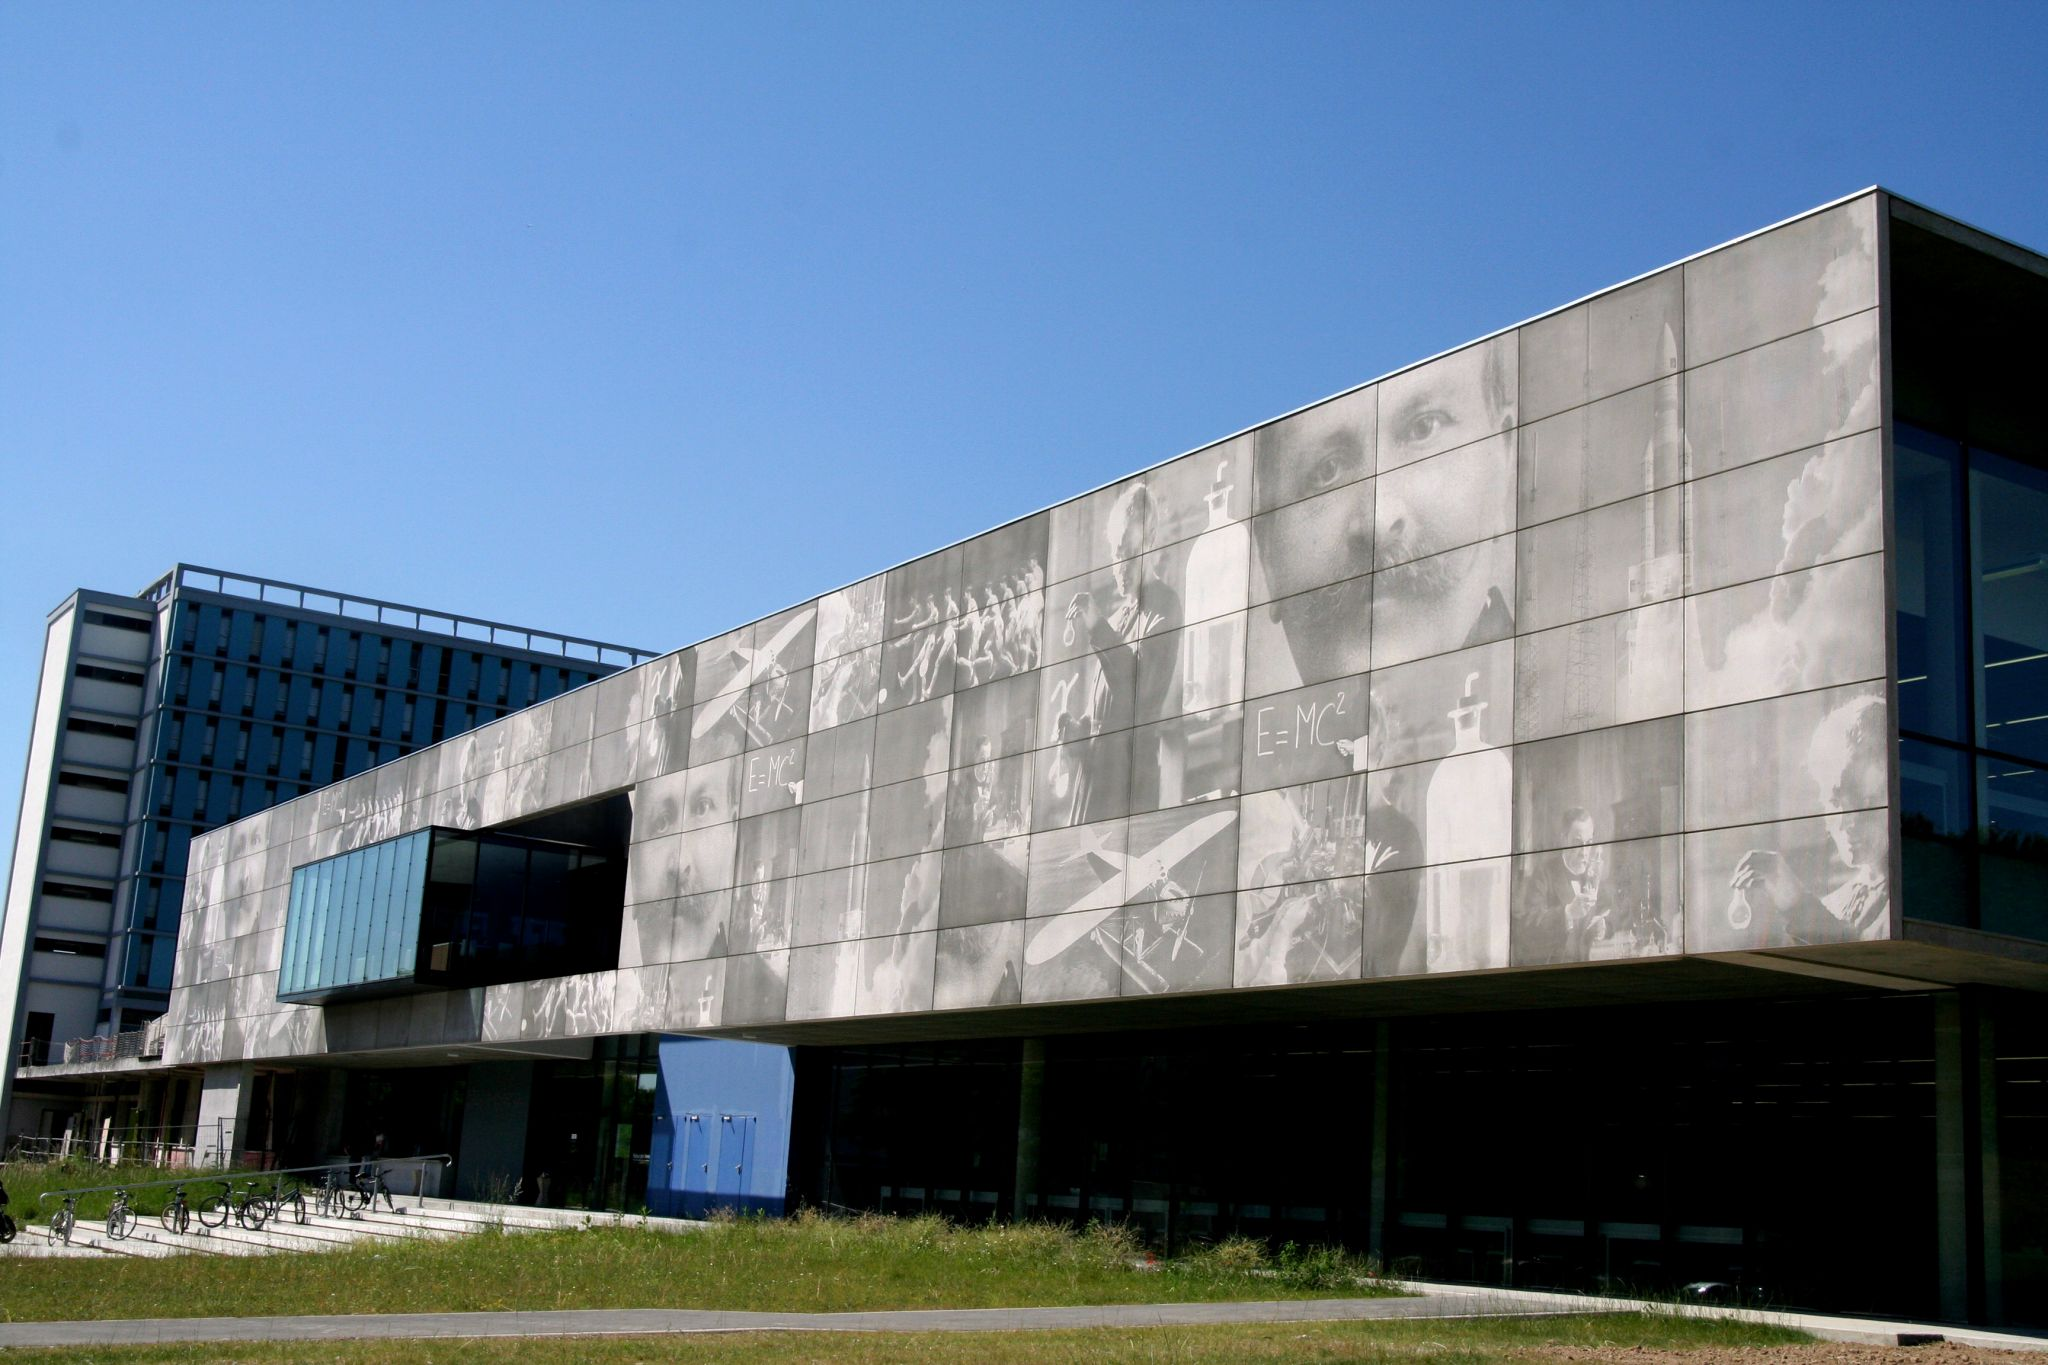 With photoengraved concrete, the sun's movement throughout the day gives rise to changing image effects on the building.